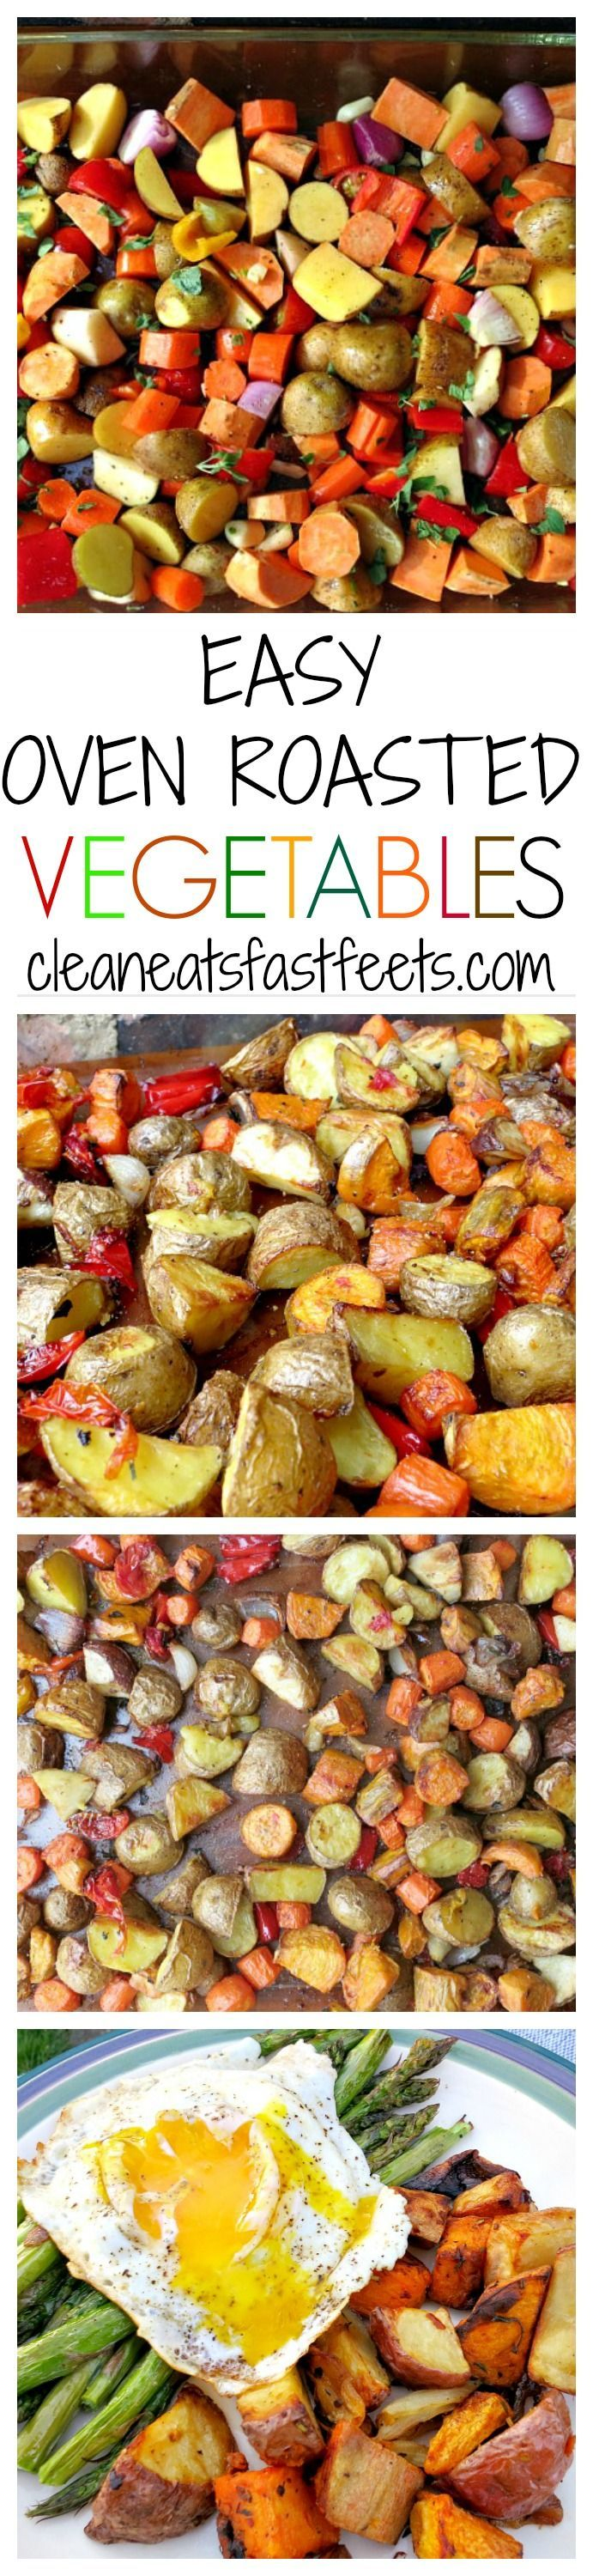 A quick and easy method to roast veggies in the oven. Make a big batch once and eat all week.